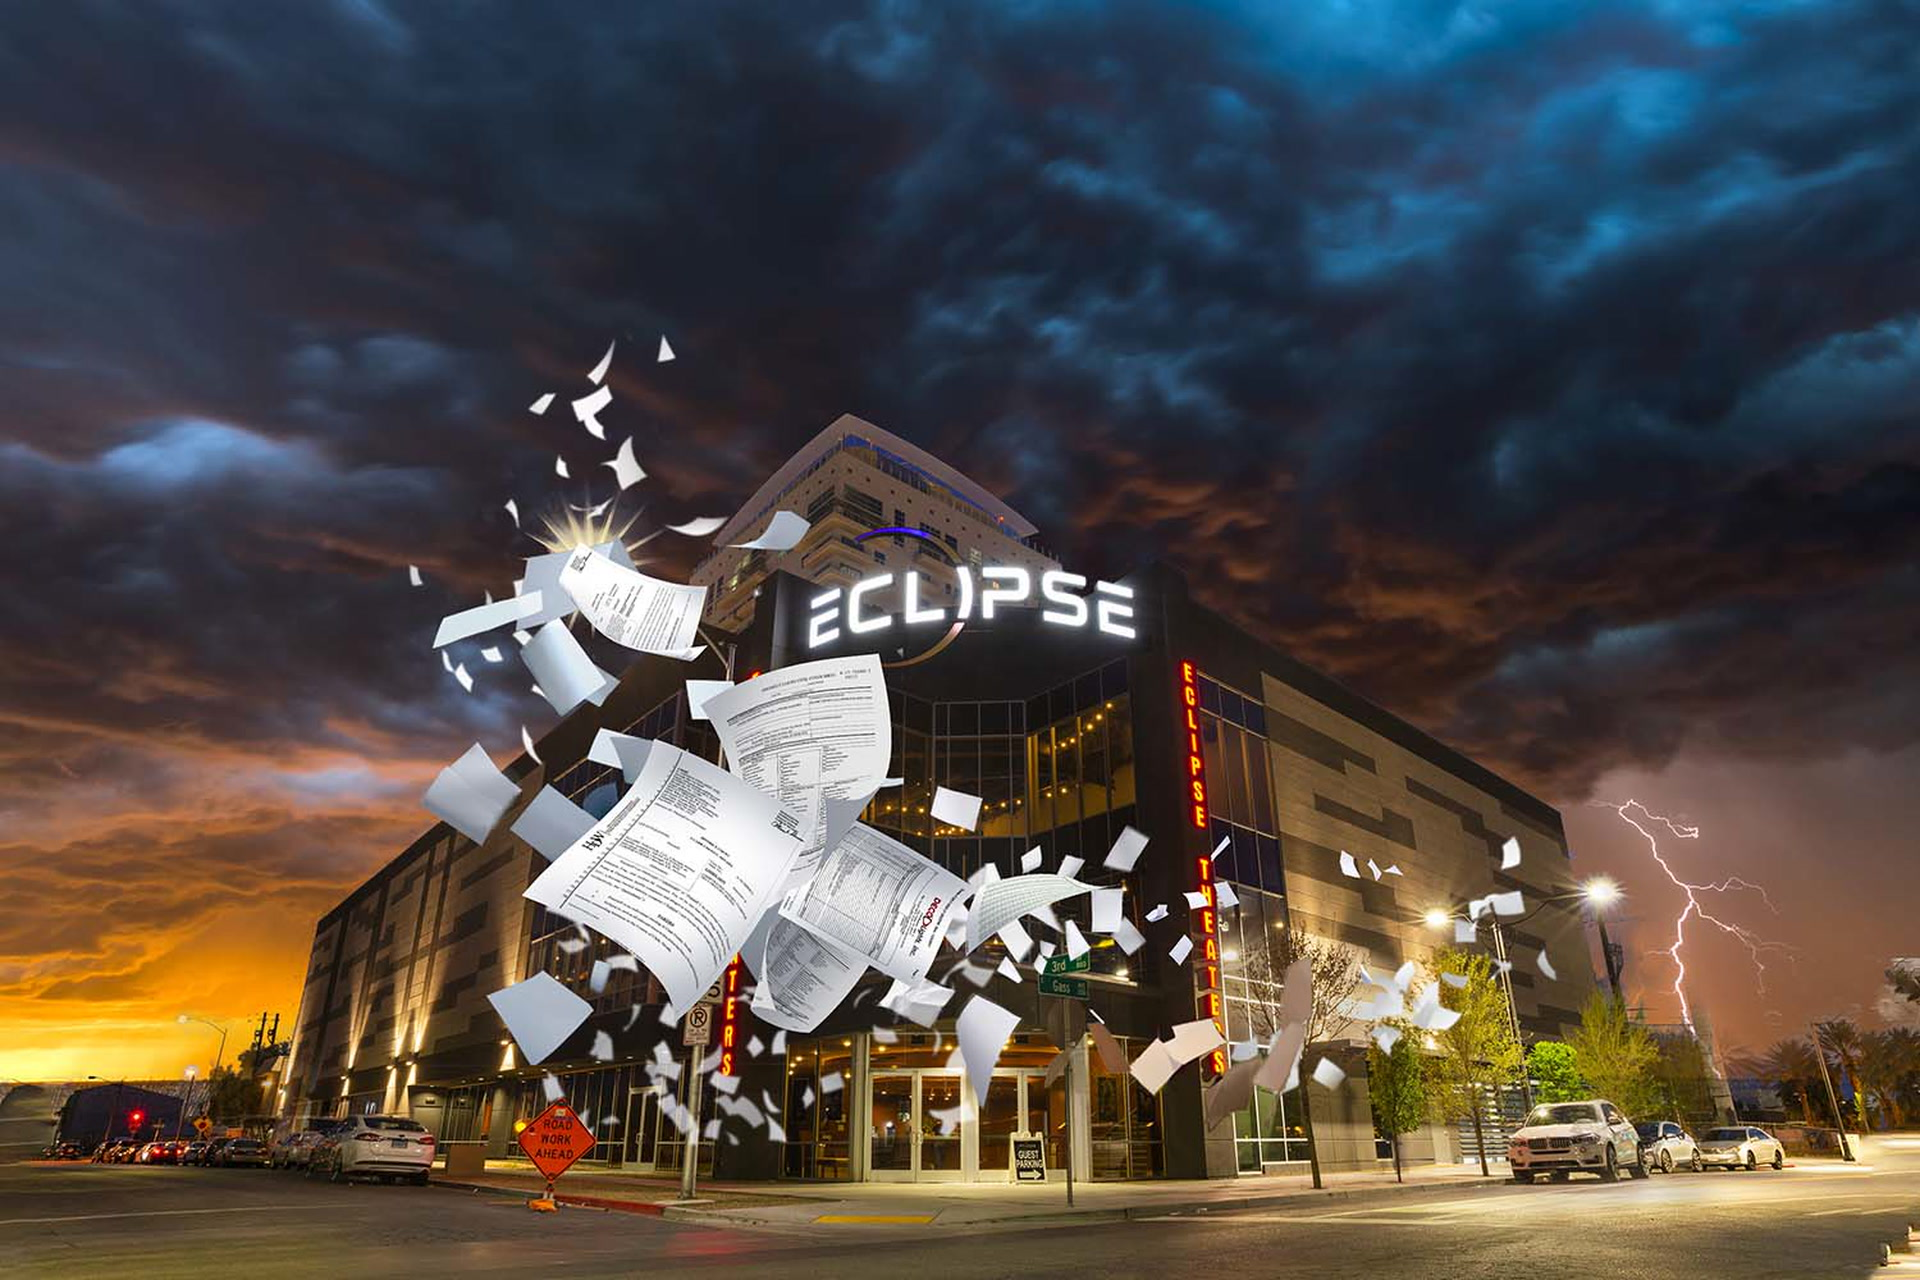 Eclipse Las Vegas >> Eclipse Theaters In Downtown Las Vegas Facing Foreclosure